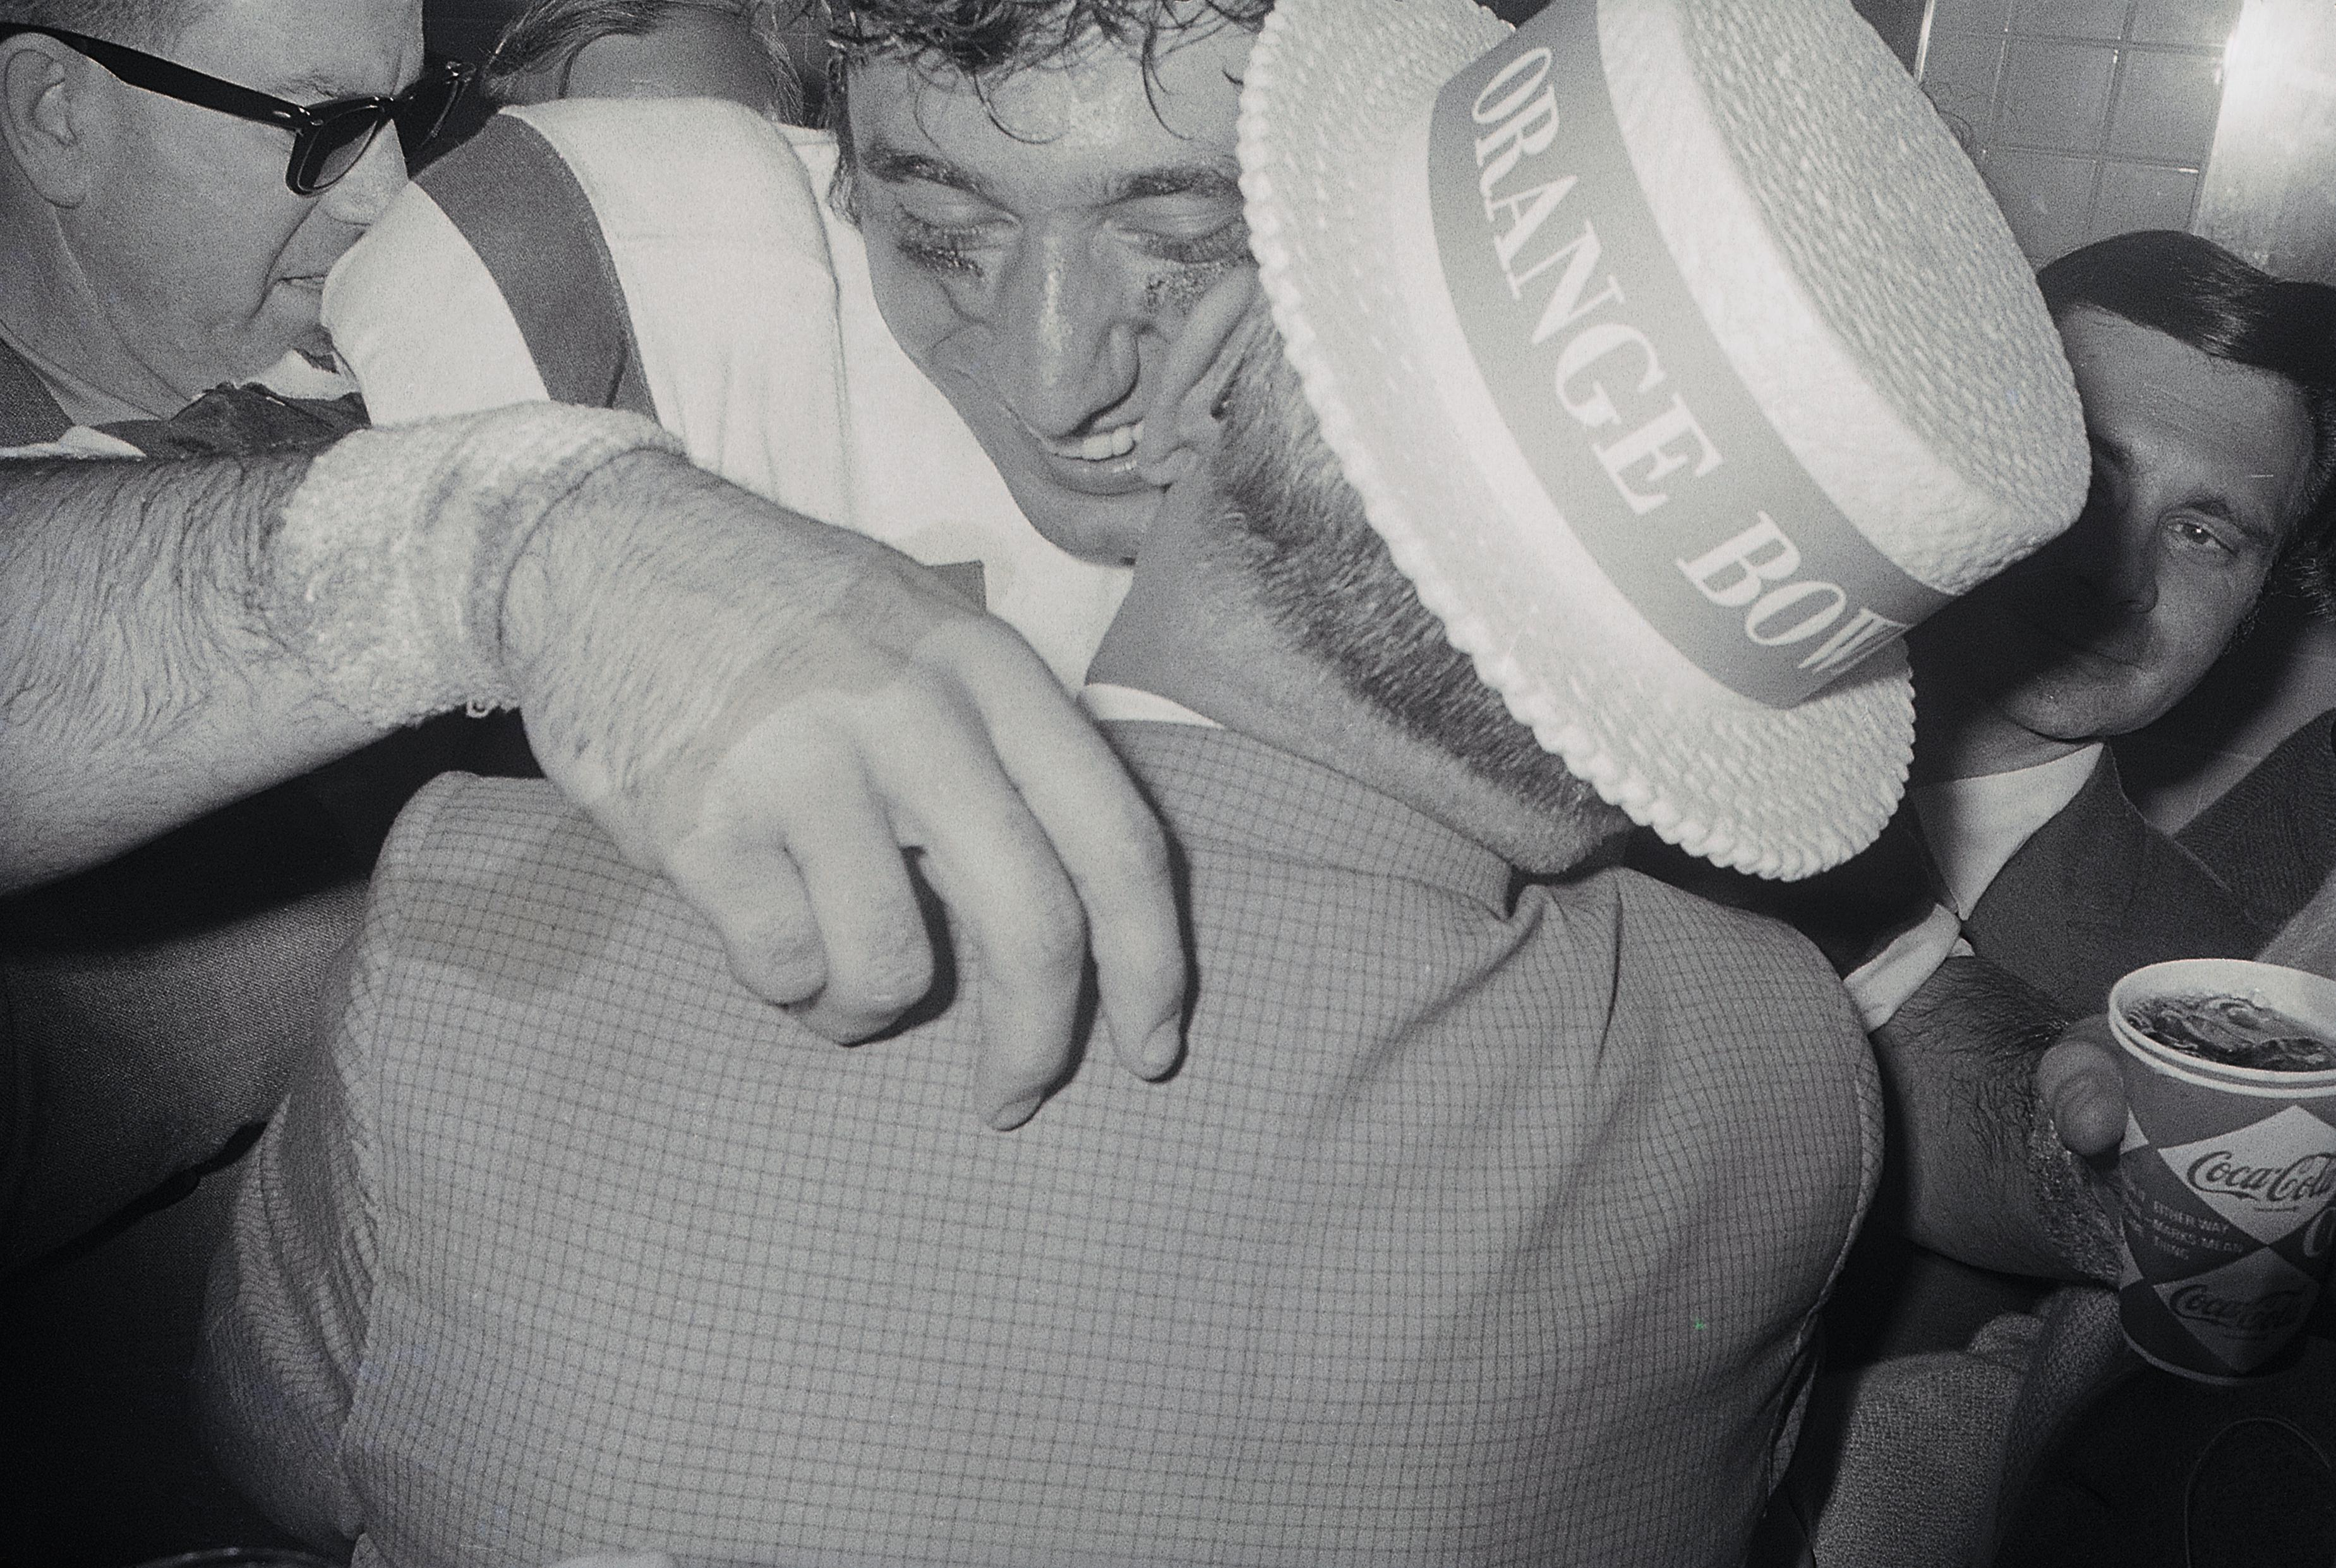 Namath hugs his dad in celebration after a major upset